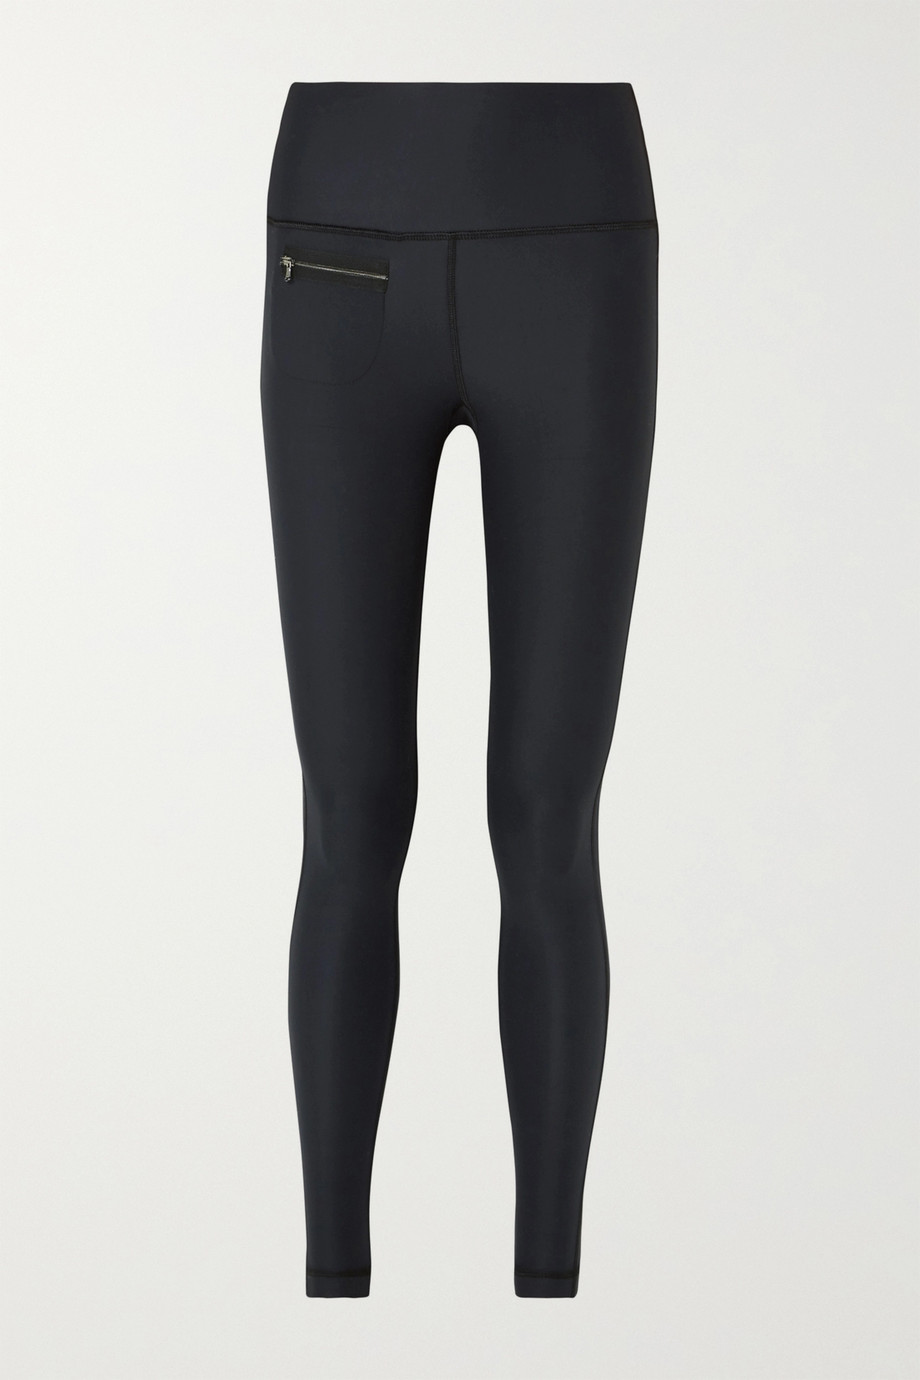 ERIN SNOW Peri stretch ski leggings